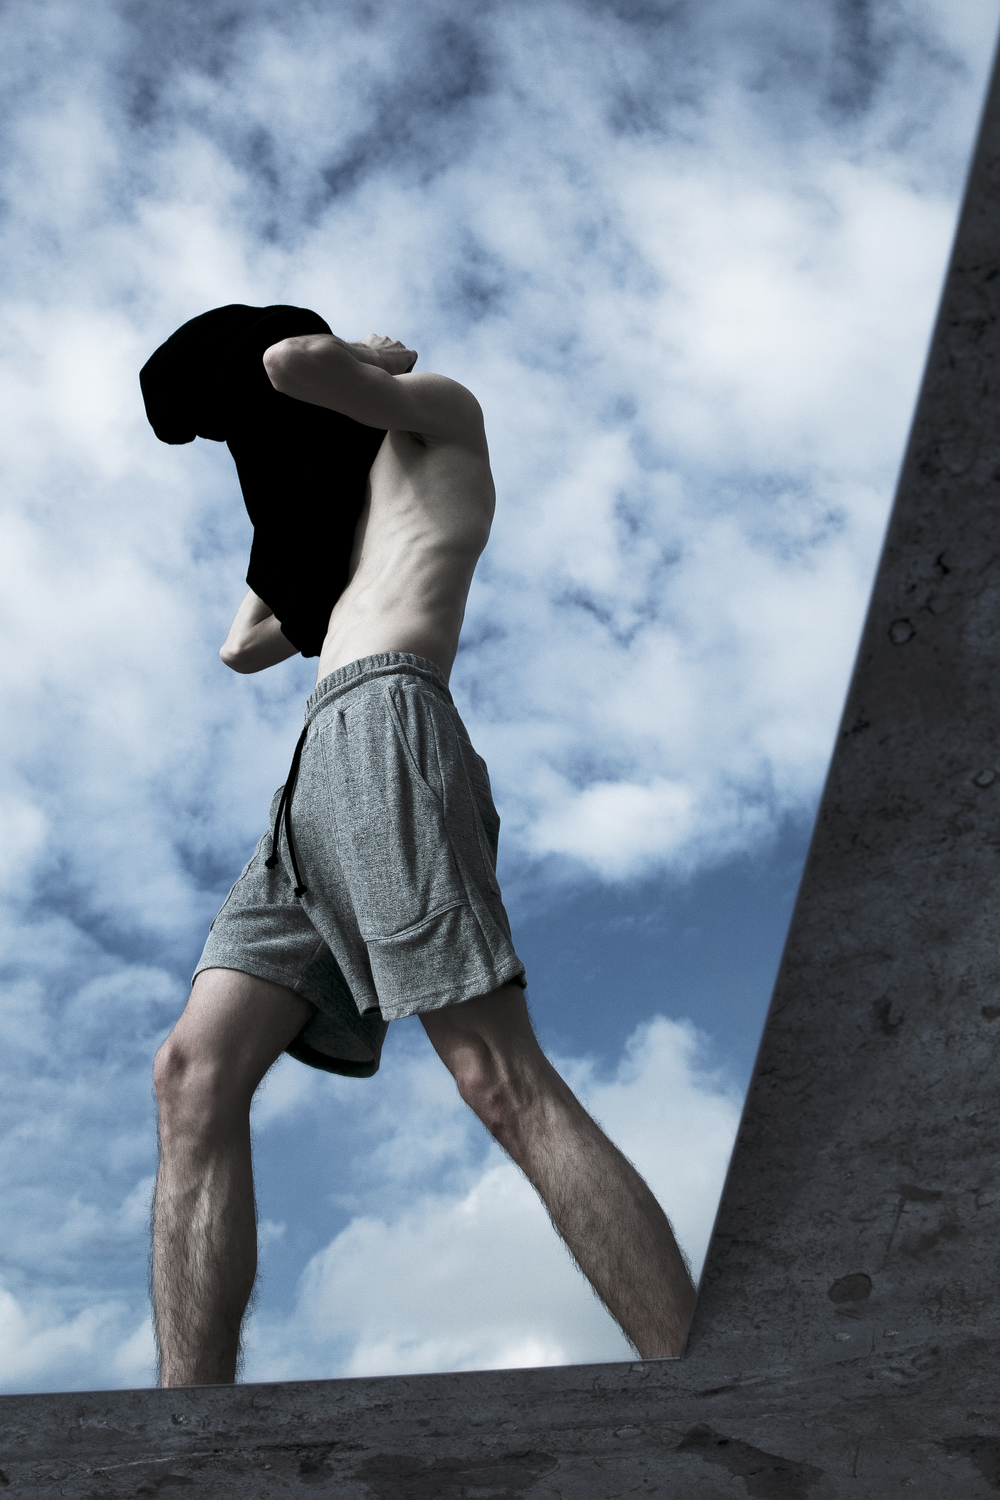 Man with gym shorts and shirt over head